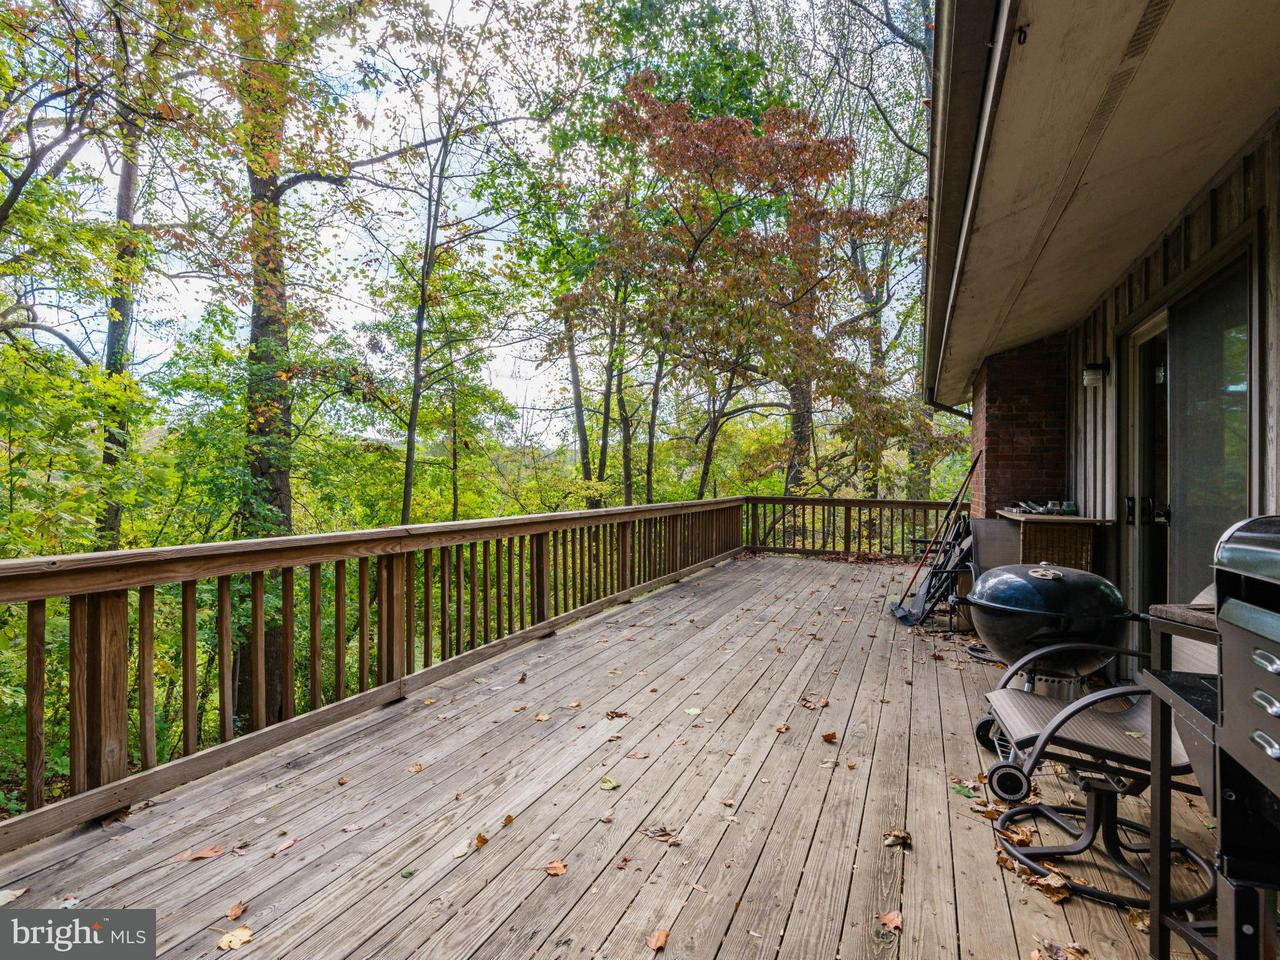 Land for Sale at 1025 Millwood Road 1025 Millwood Road Great Falls, Virginia 22066 United States